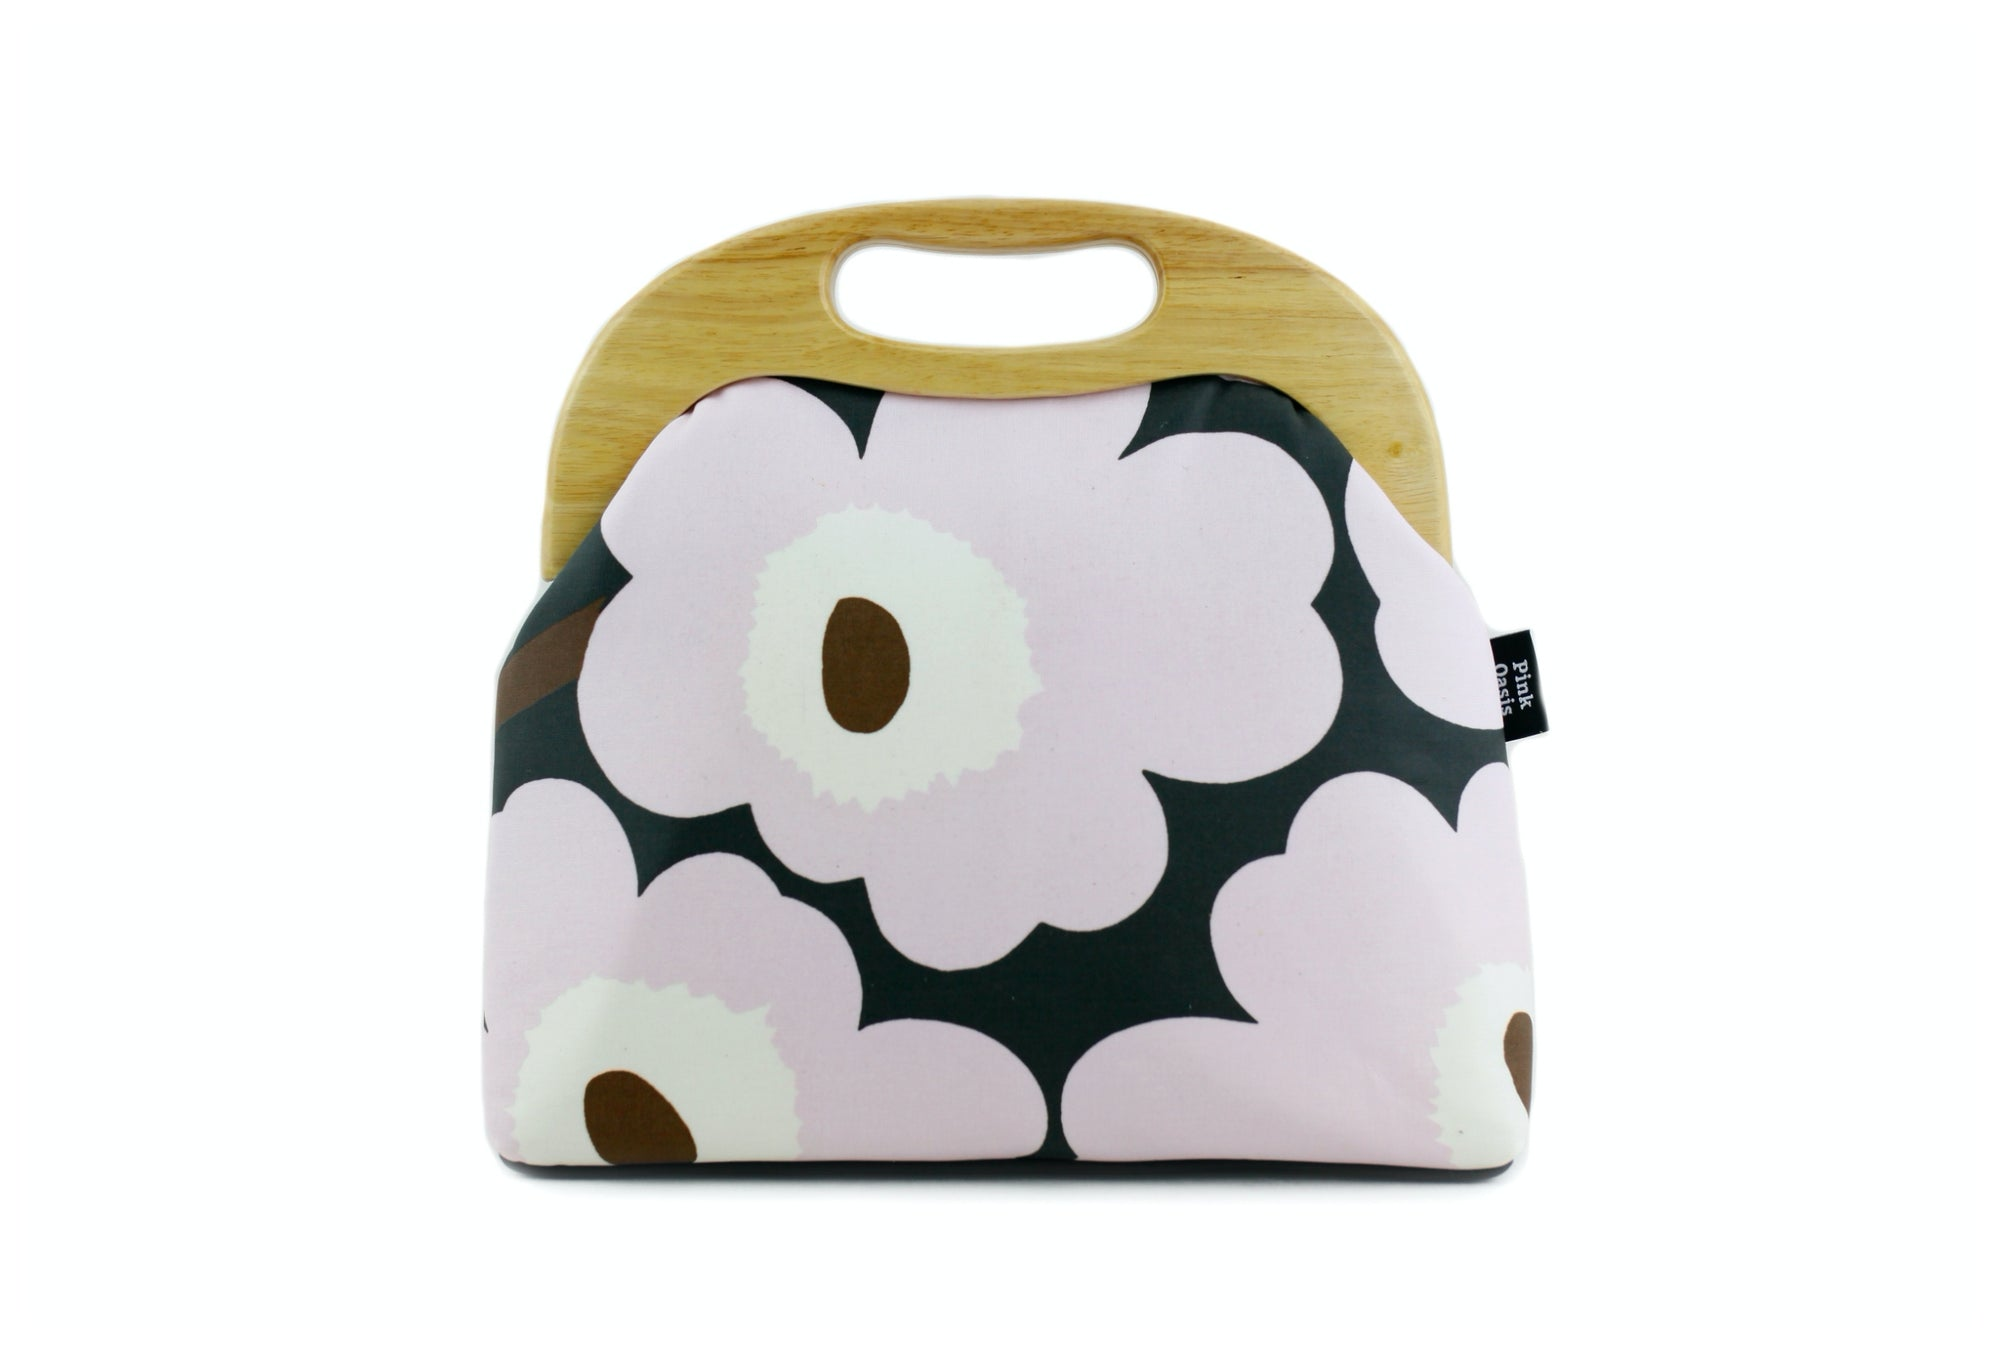 Marimekko Unikko Light Pink Clutch Bag with Leather Strap | PINKOASIS